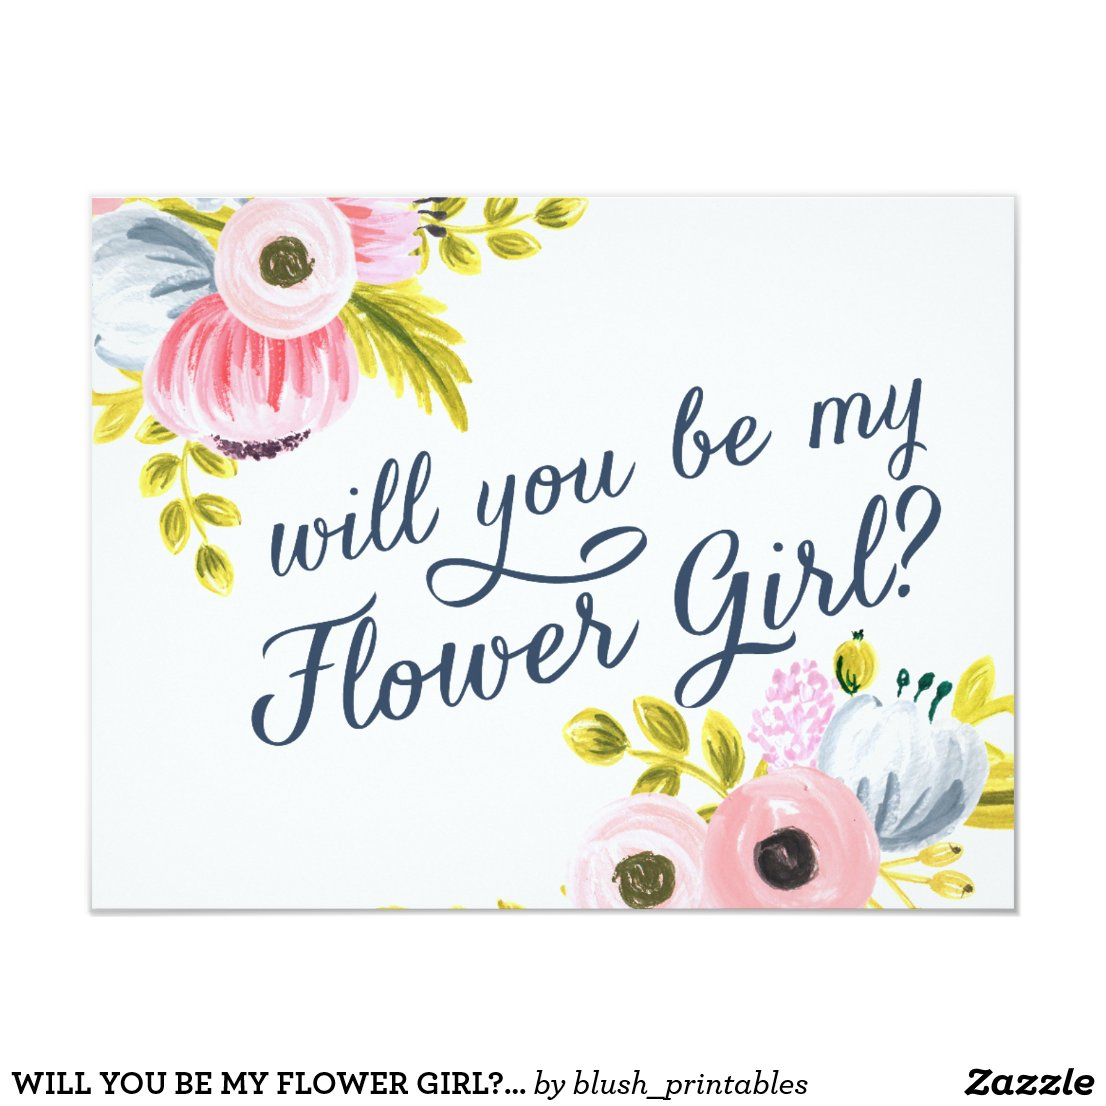 WILL YOU BE MY FLOWER GIRL? hand painted card